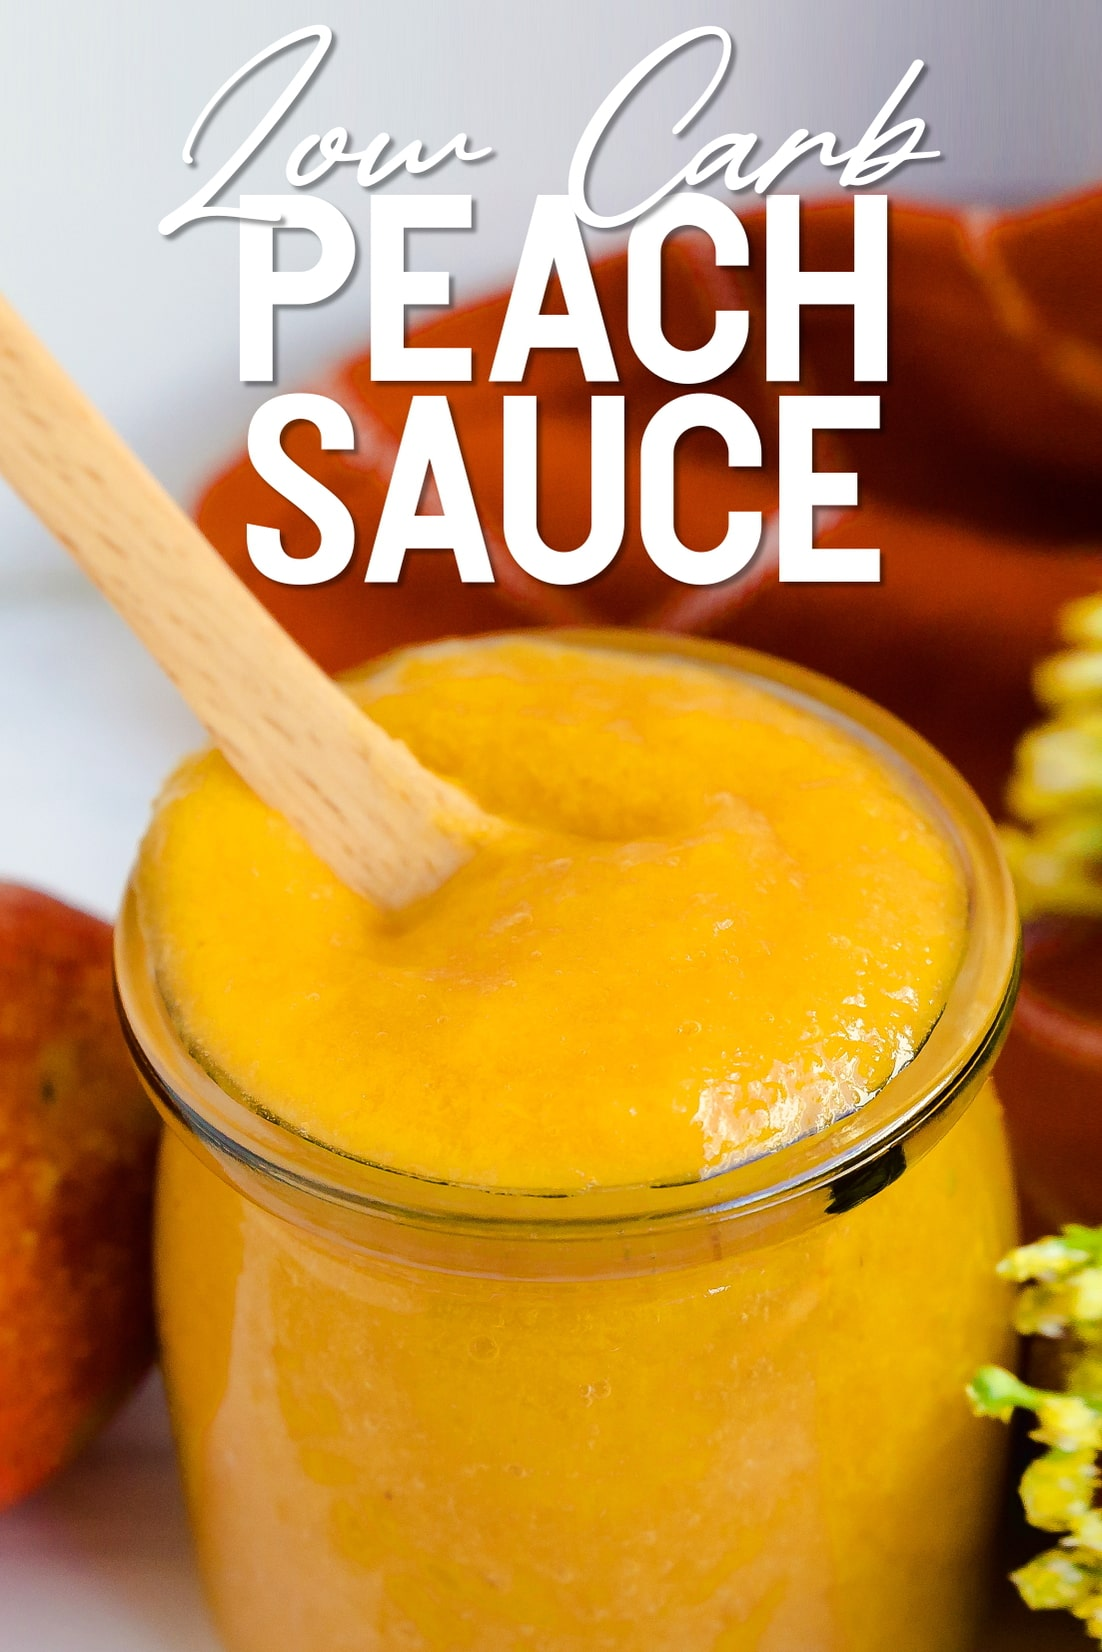 Low Carb Peach Sauce with a spoon inside